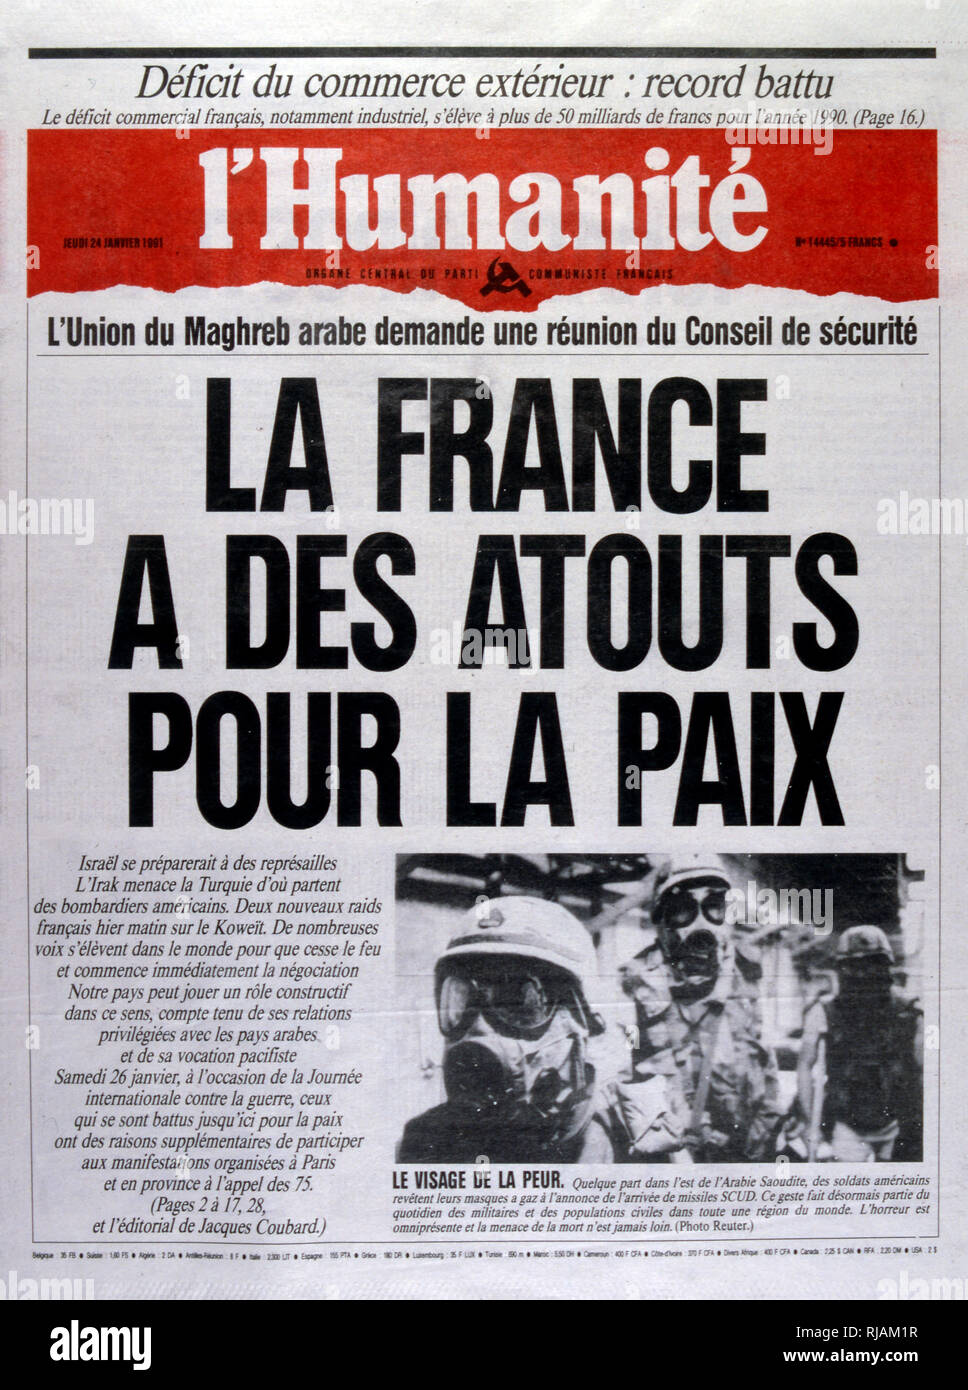 Headline in 'l'Humanite' a French left wing, newspaper, 24th February 1991, against the escalating action in the Gulf War (2 August 1990 - 28 February 1991). codenamed Operation Desert Shield and Operation Desert Storm, the war waged by coalition forces from 35 nations led by the United States against Iraq in response to Iraq's invasion and annexation of Kuwait. - Stock Image